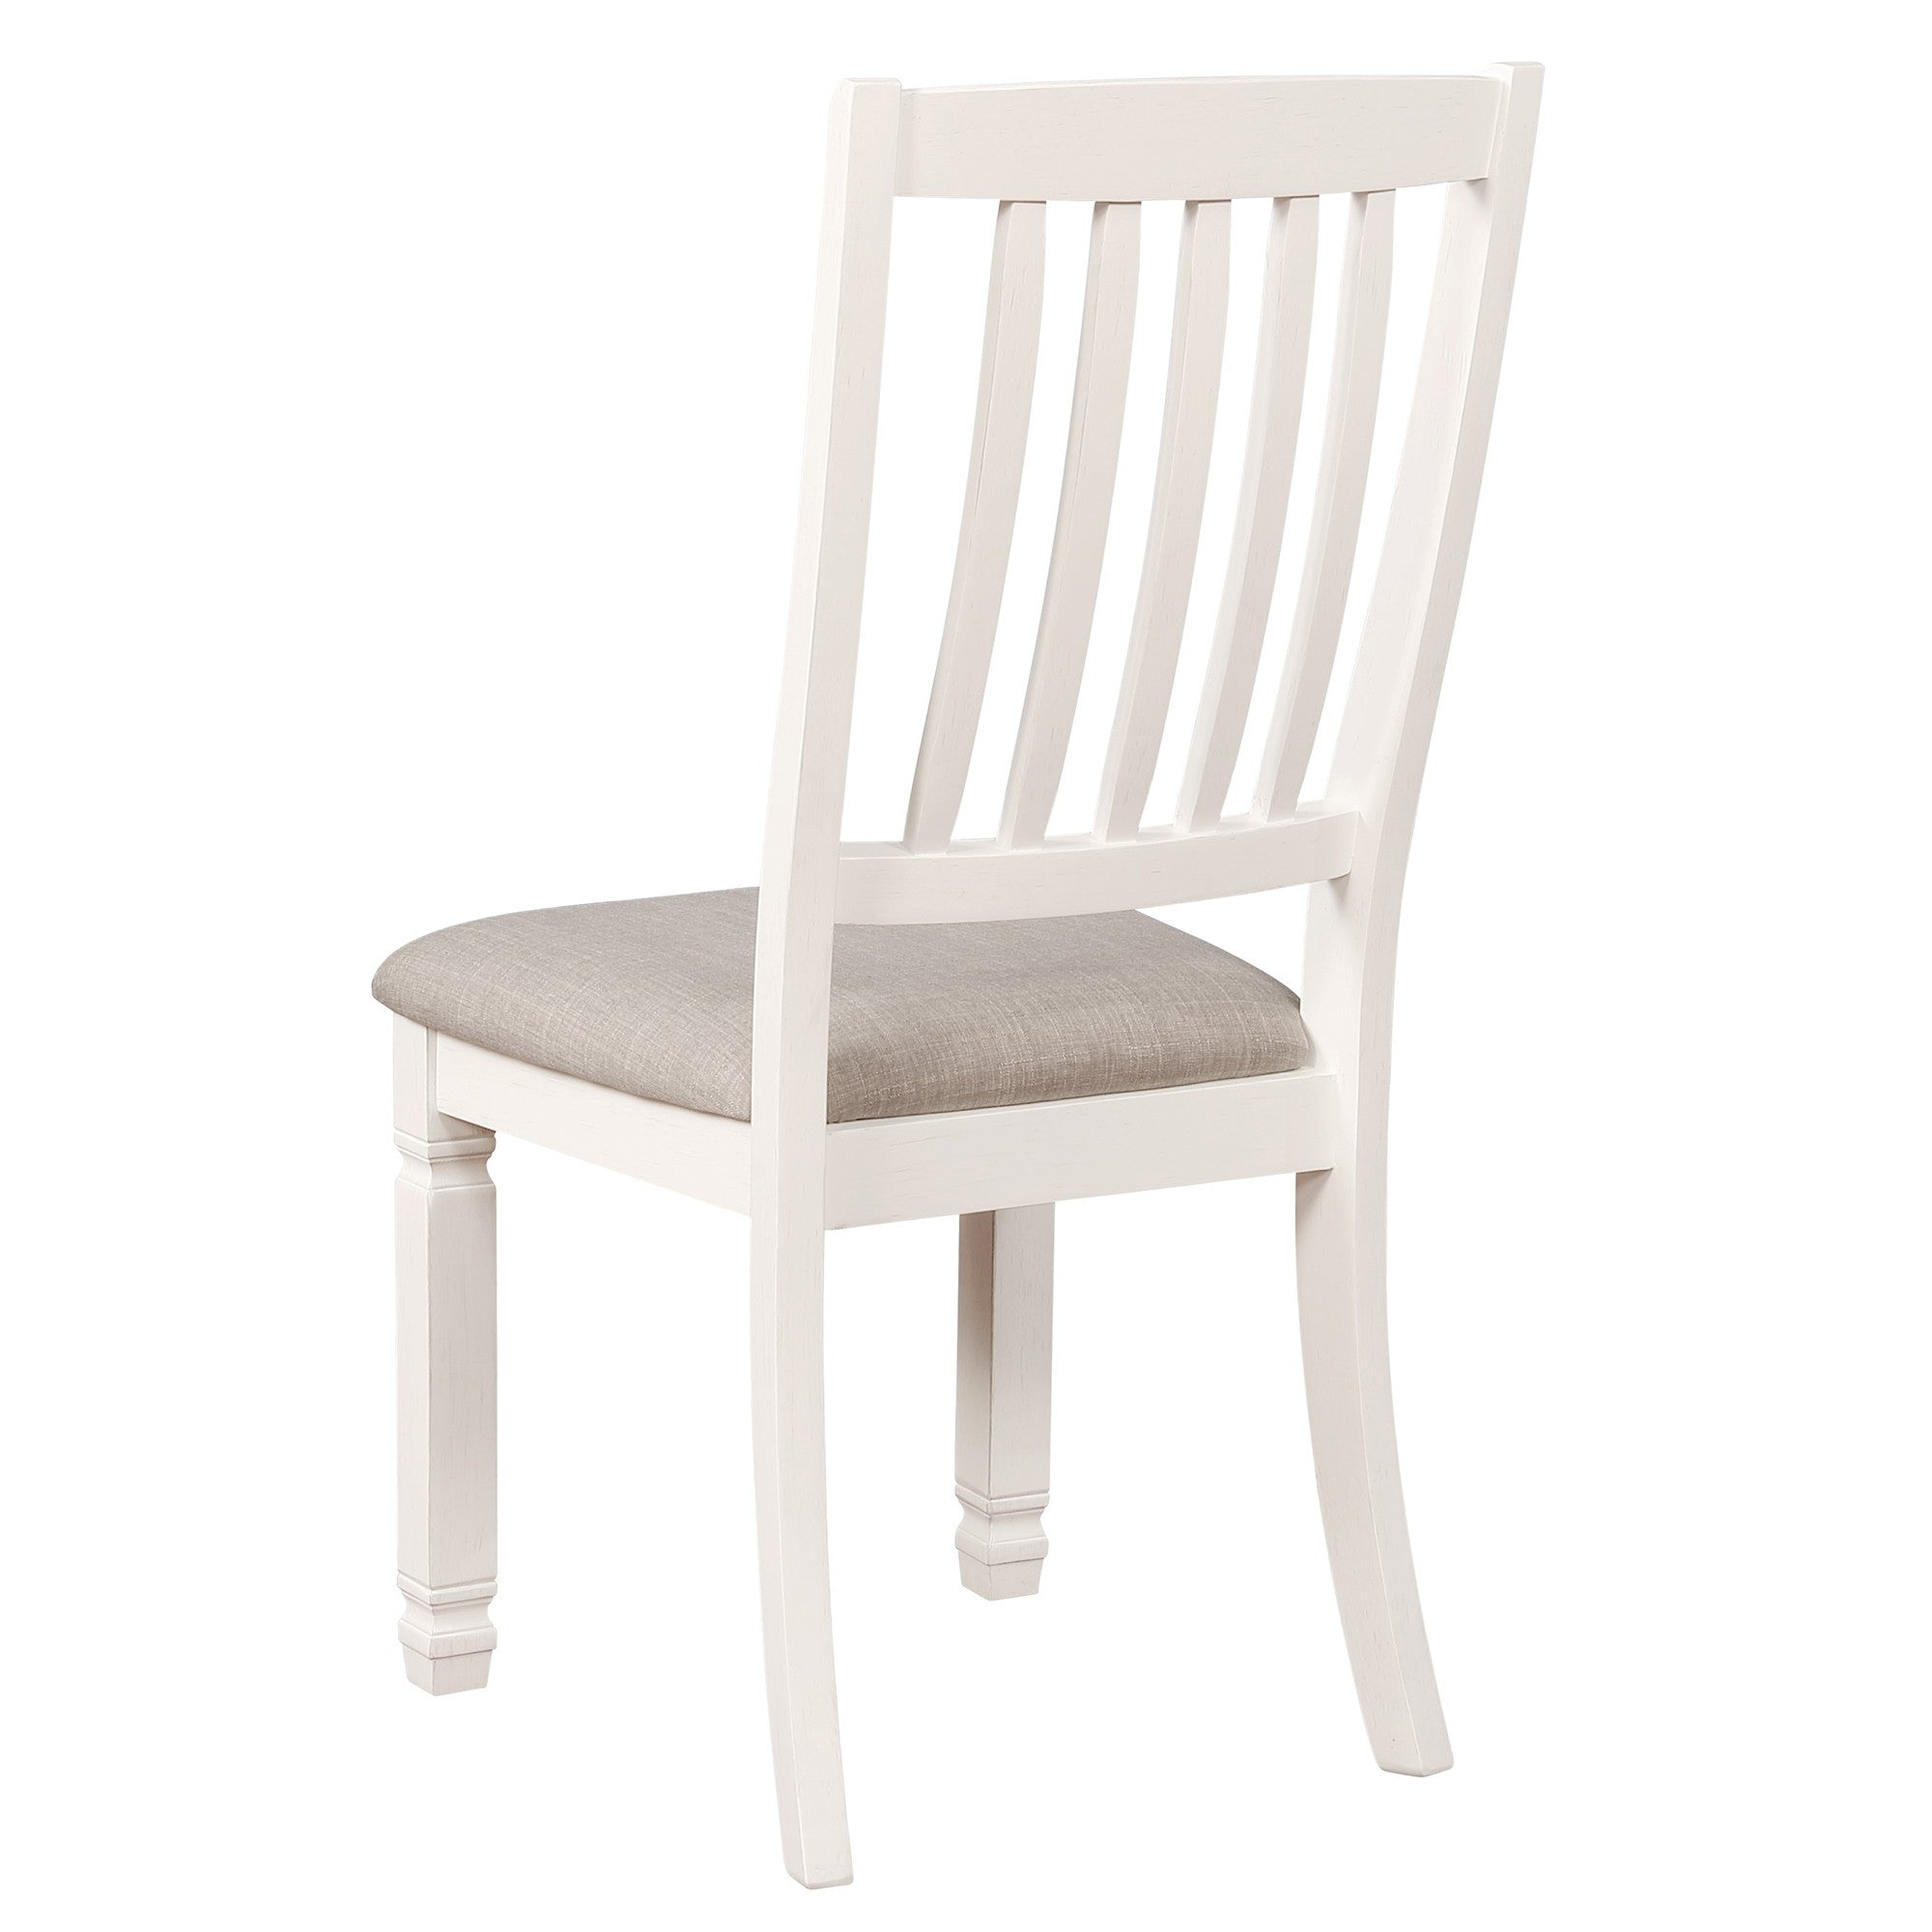 Highlands Side Chair in Antique White, 2pk